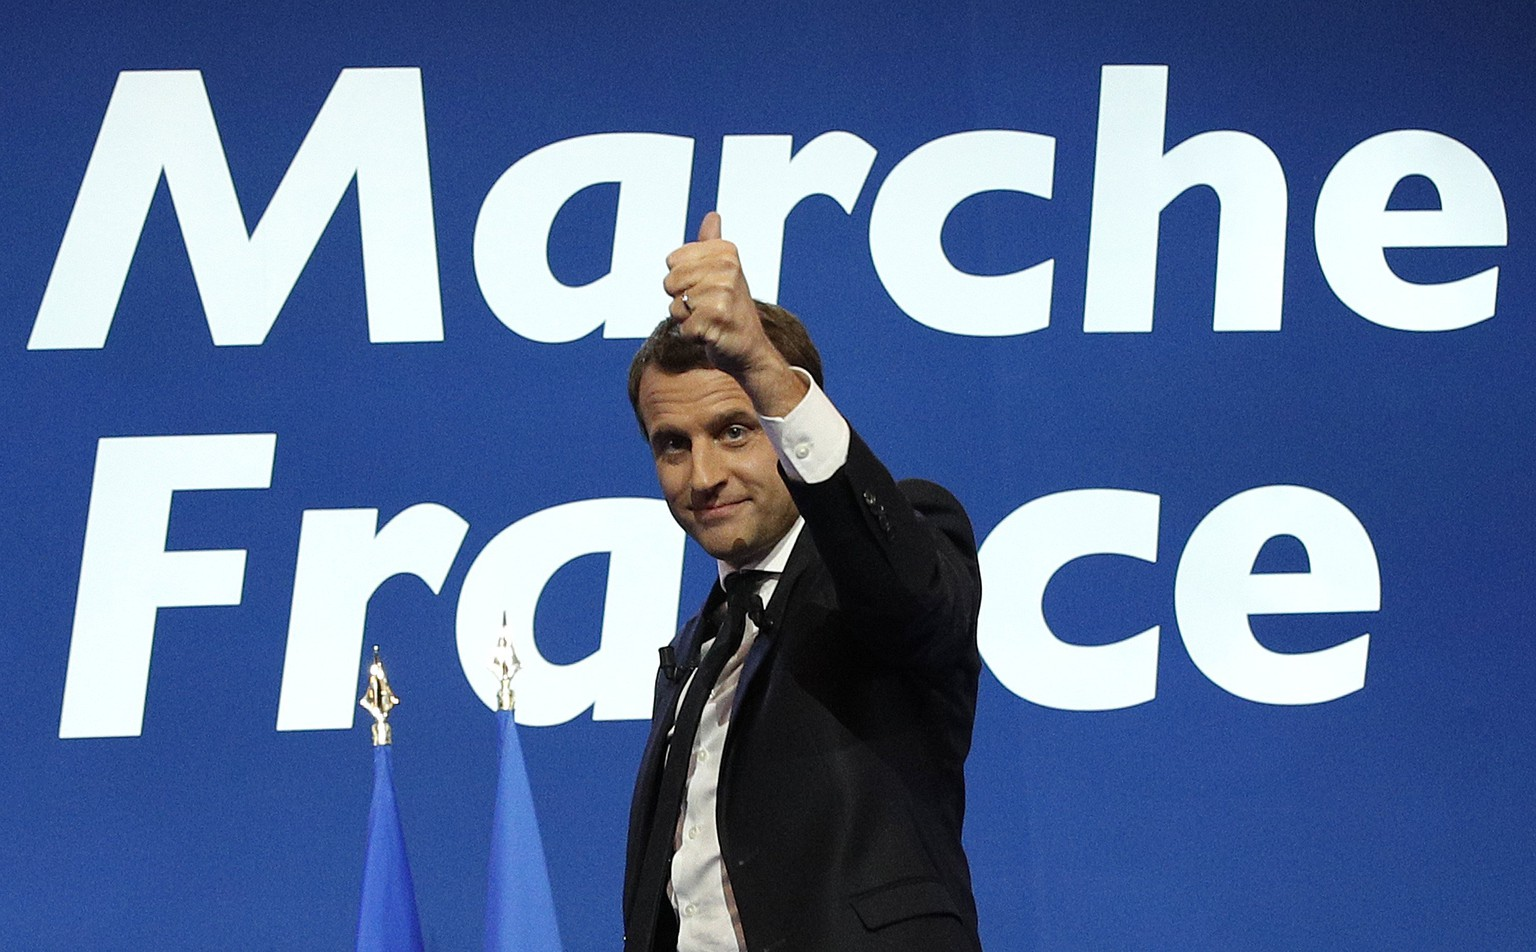 epa05924569 French presidential election candidate for the 'En Marche!' (Onwards!) political movement, Emmanuel Macron celebrates after the first round of the French presidential elections in Paris, France, 23 April 2017. Media reports that polling agencies projections place Le-Pen and centrist presidential candidate Emmanuel Macron in the lead positions for the vote. France will hold the second round of the presidential elections on 07 May 2017.  EPA/YOAN VALAT